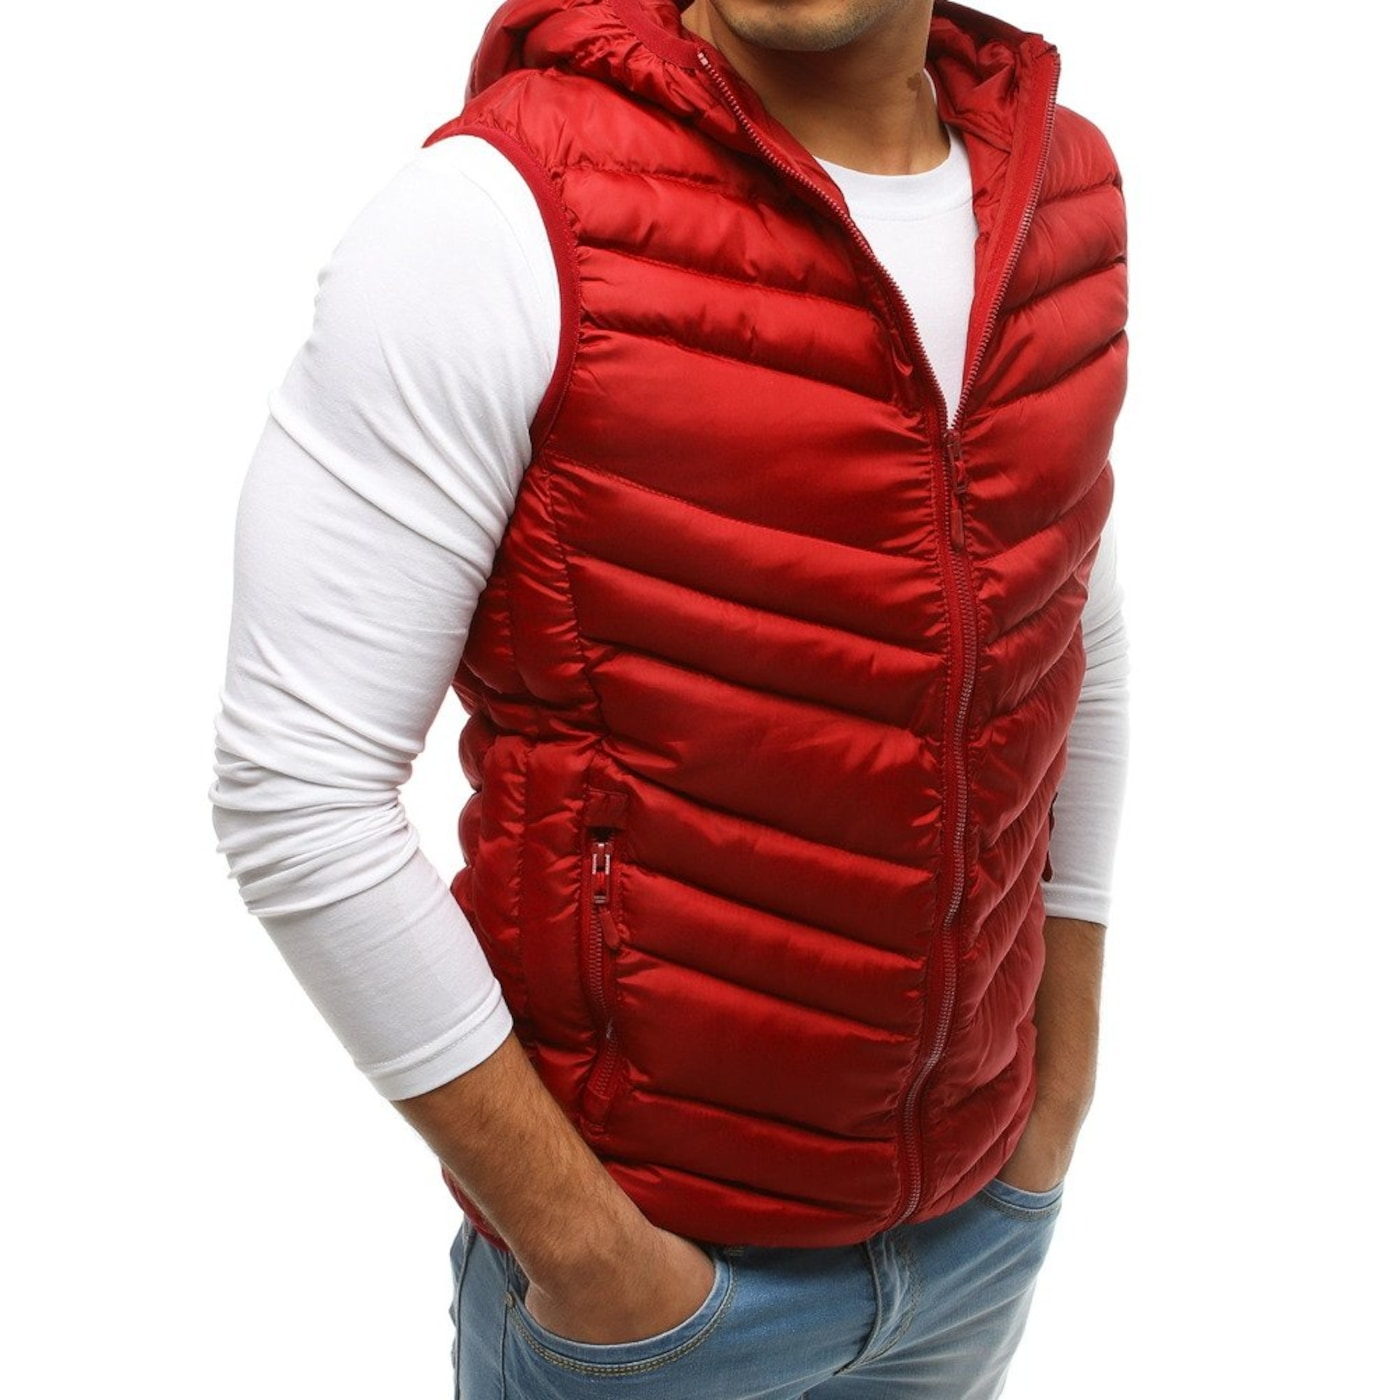 Men's quilted hooded vest TX2661